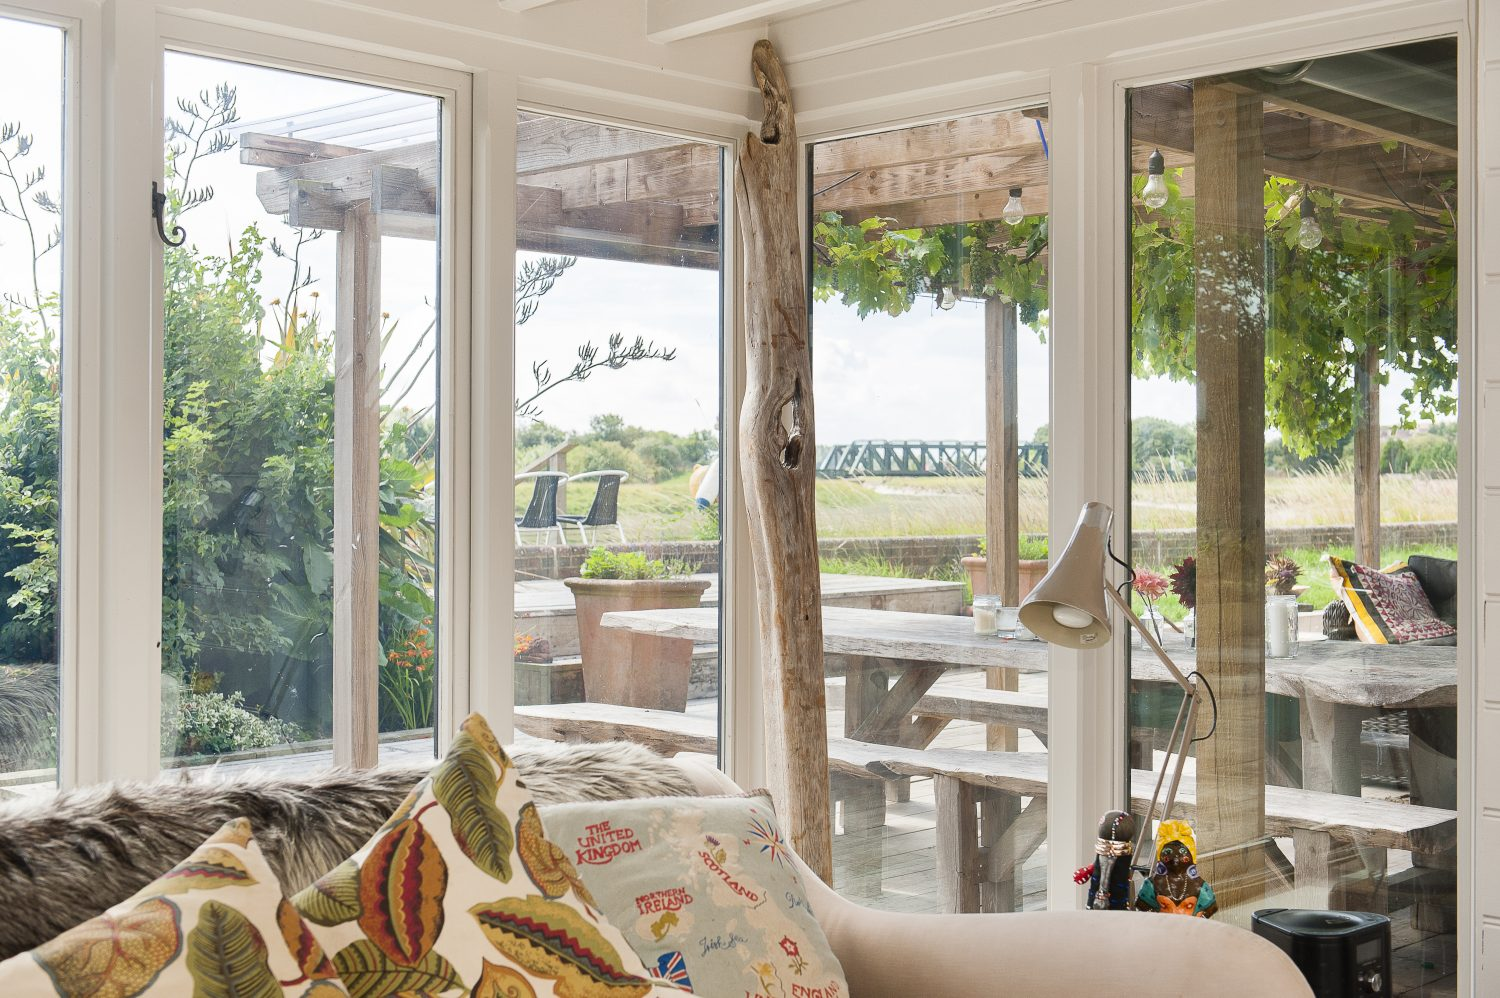 Glass doors lead out from the sitting room and dining area onto a deck shaded by a pergola